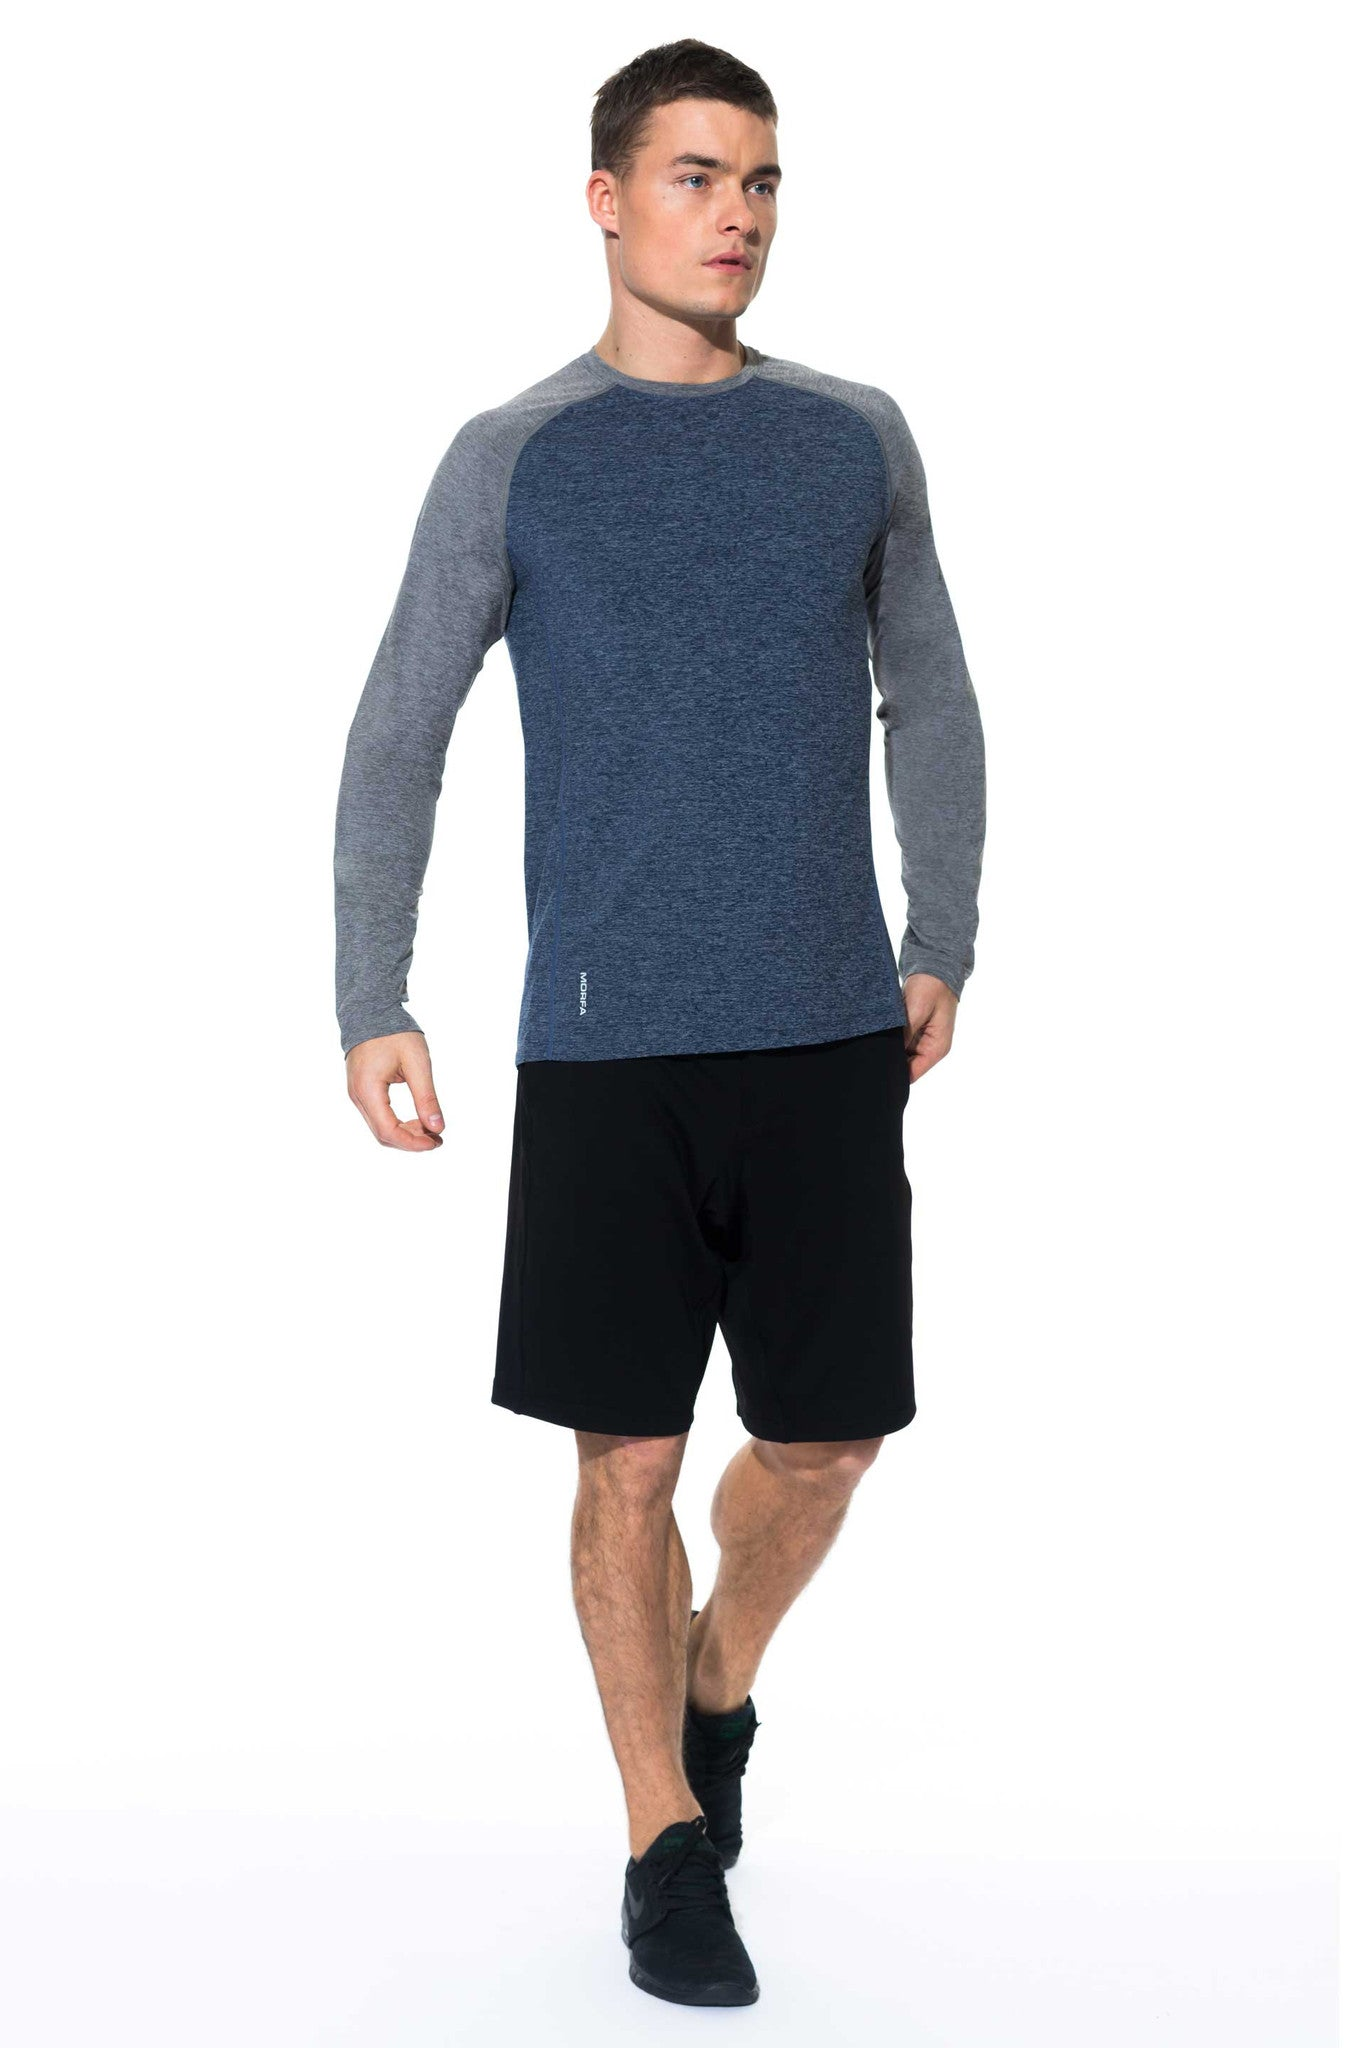 FOCUS LONG SLEEVE - ECLIPSE/STEEL - ( SIZES: S, M & XL )